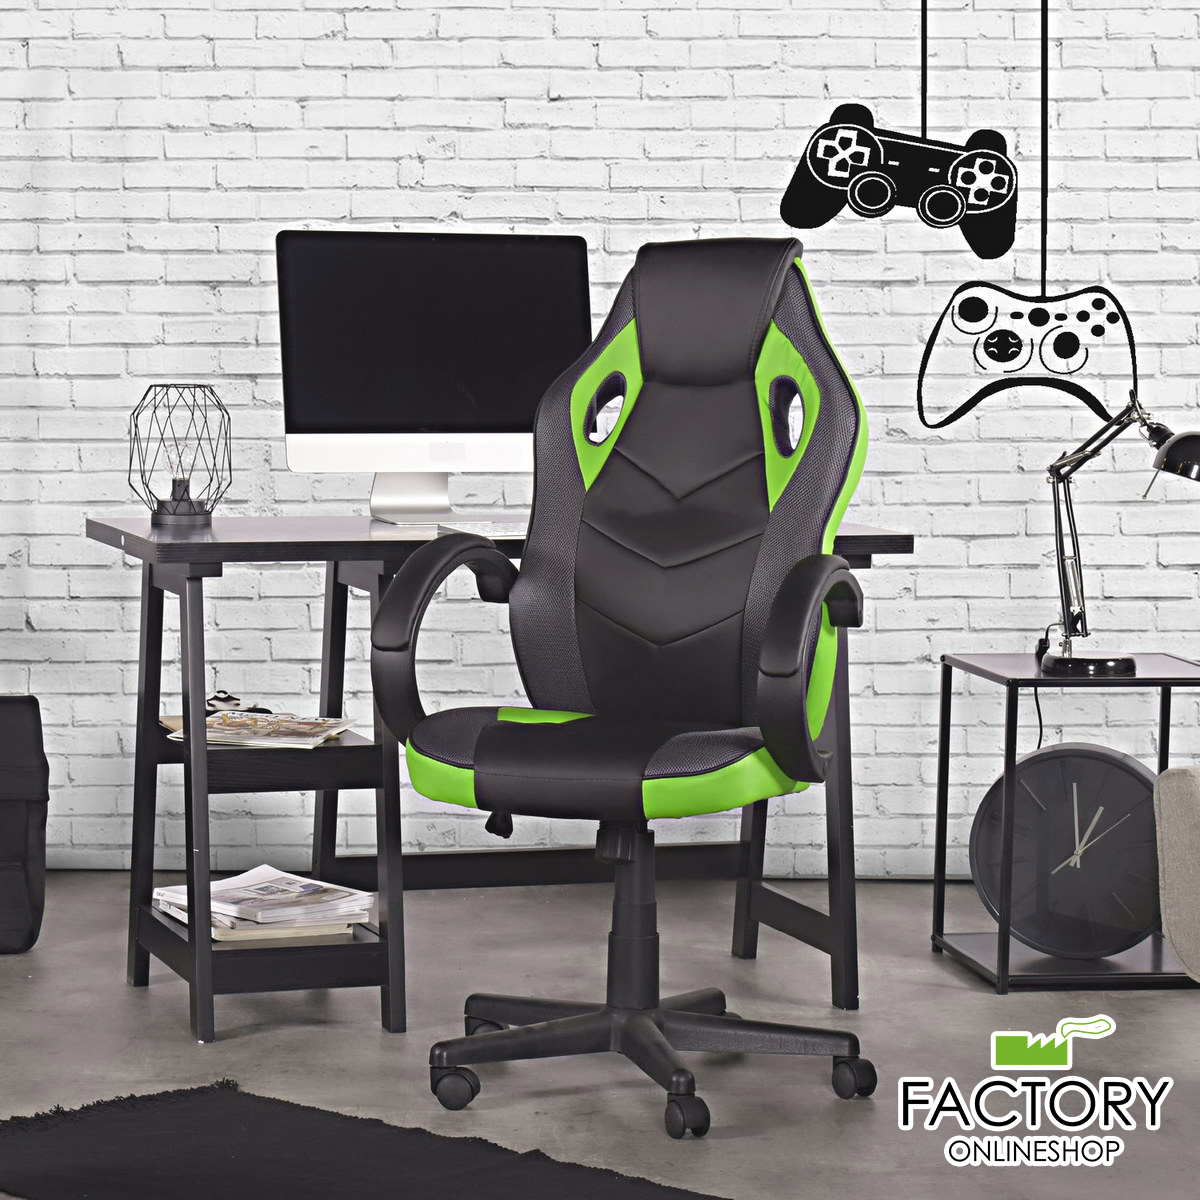 thumbnail 11 - Gaming Racing Chair Office High Back Ergonomic Computer Desk Swivel PU Leather